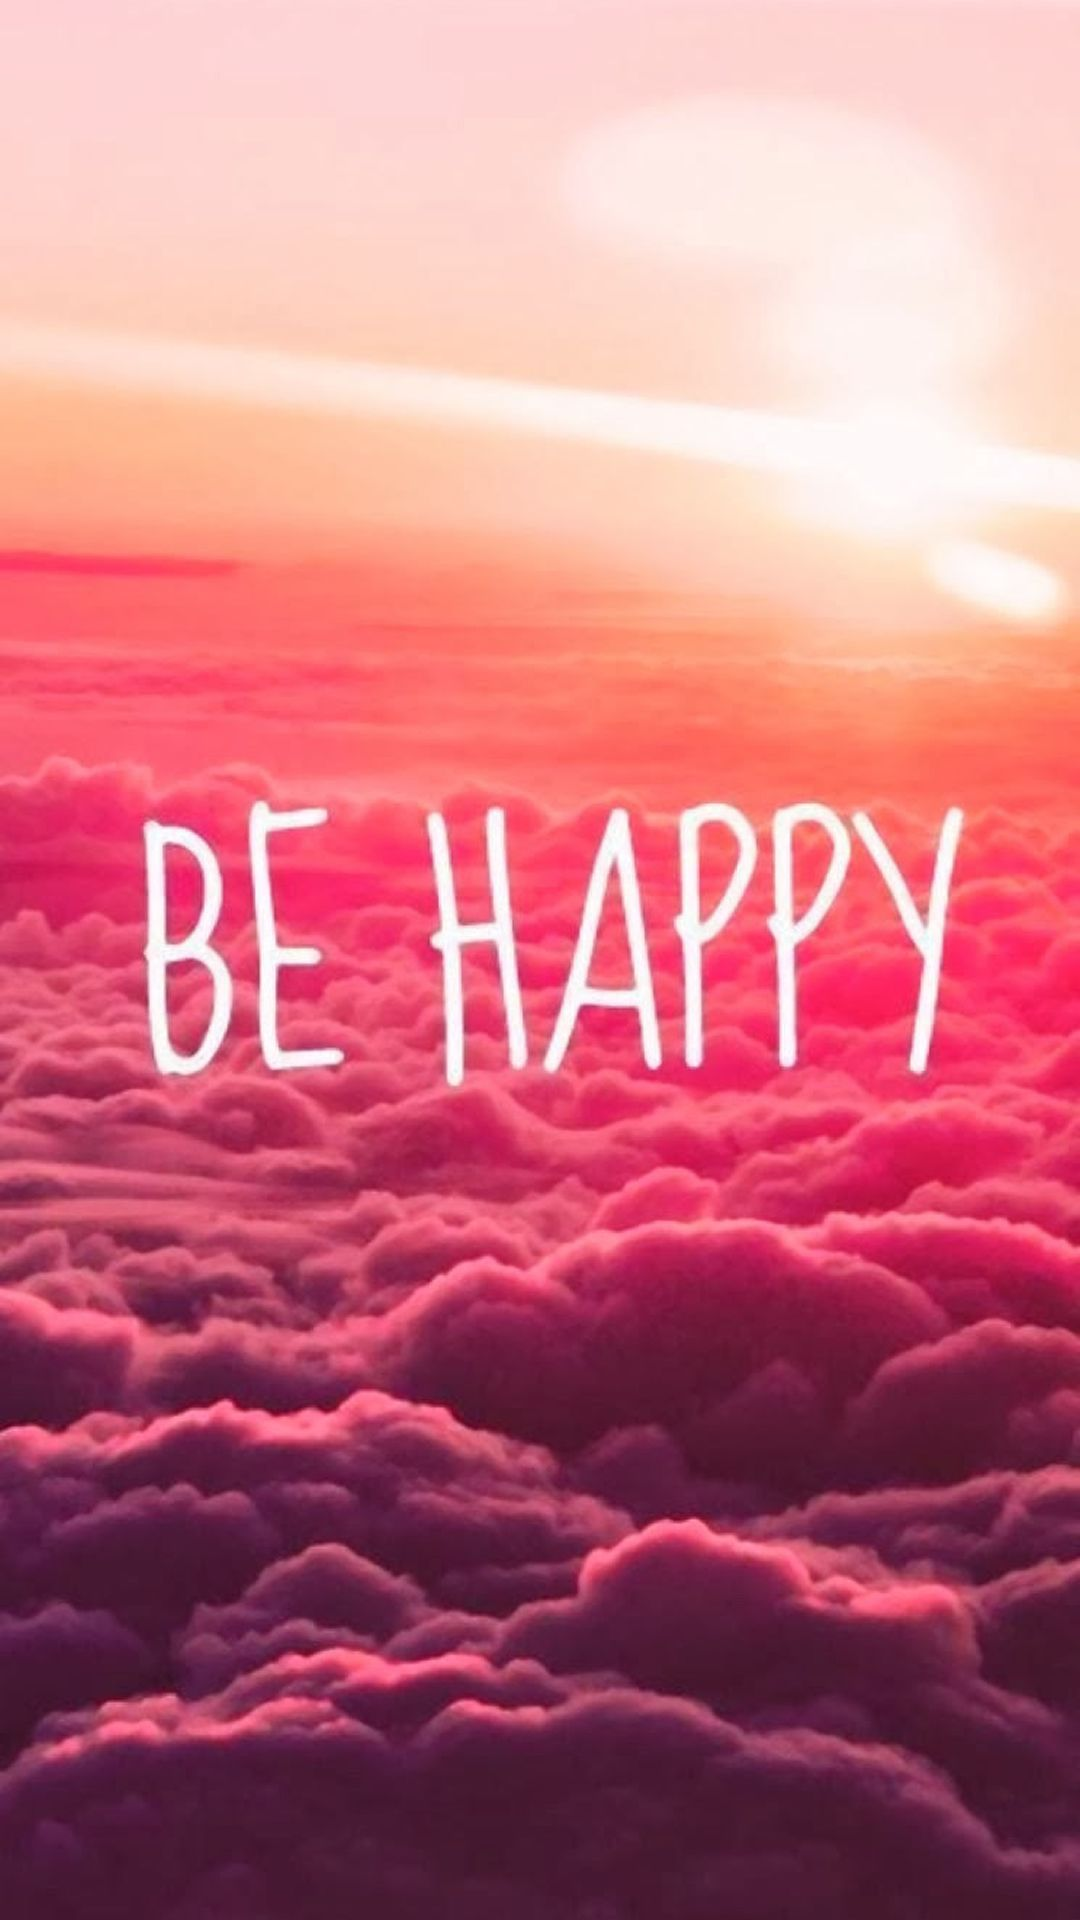 Be Happy Puffy Clouds Iphone 6 Wallpaper Download Iphone Wallpapers Ipad Wallpapers One Stop Download Clouds Dear God Gods Love